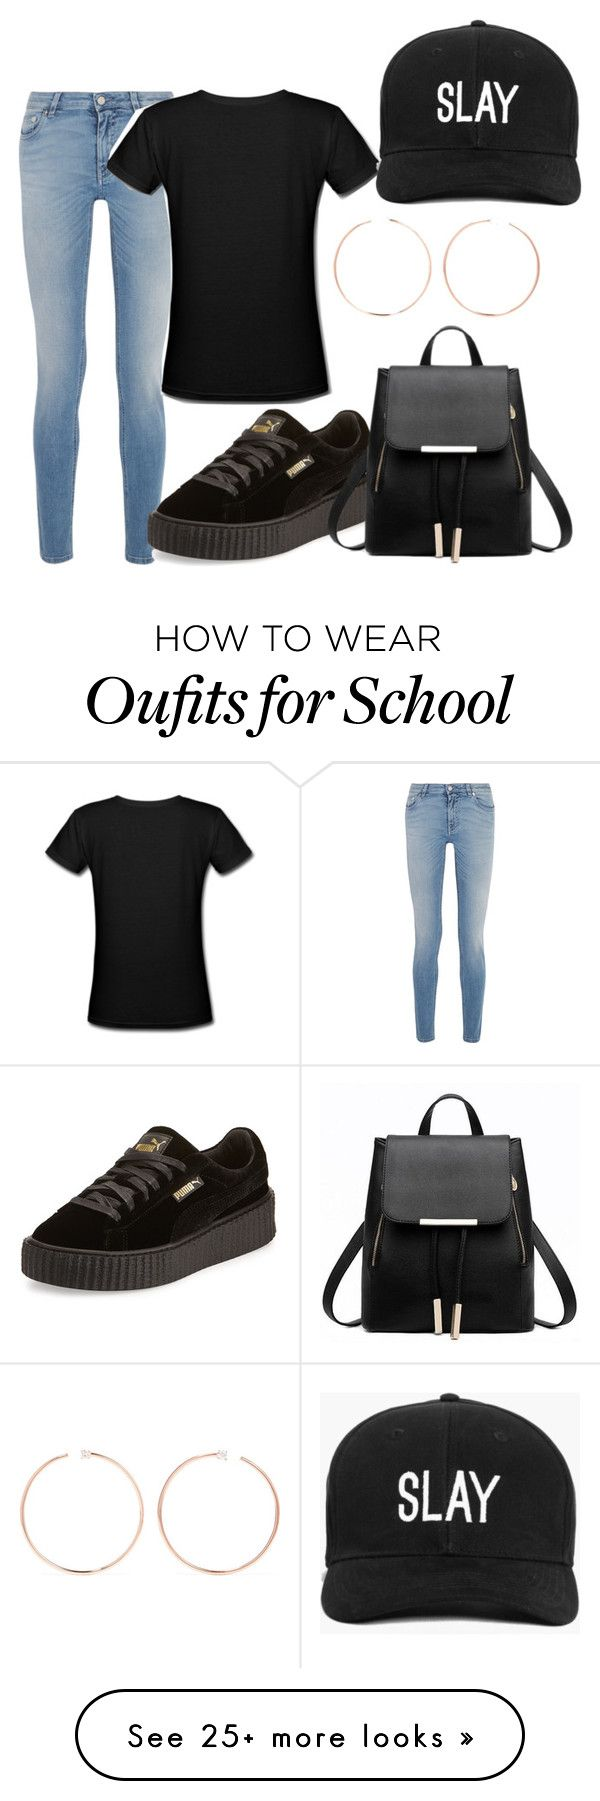 """""""How to style a basic black tee look #1"""" by thestylegosssip on Polyvore featuring Givenchy, Anita Ko, Puma and Boohoo"""